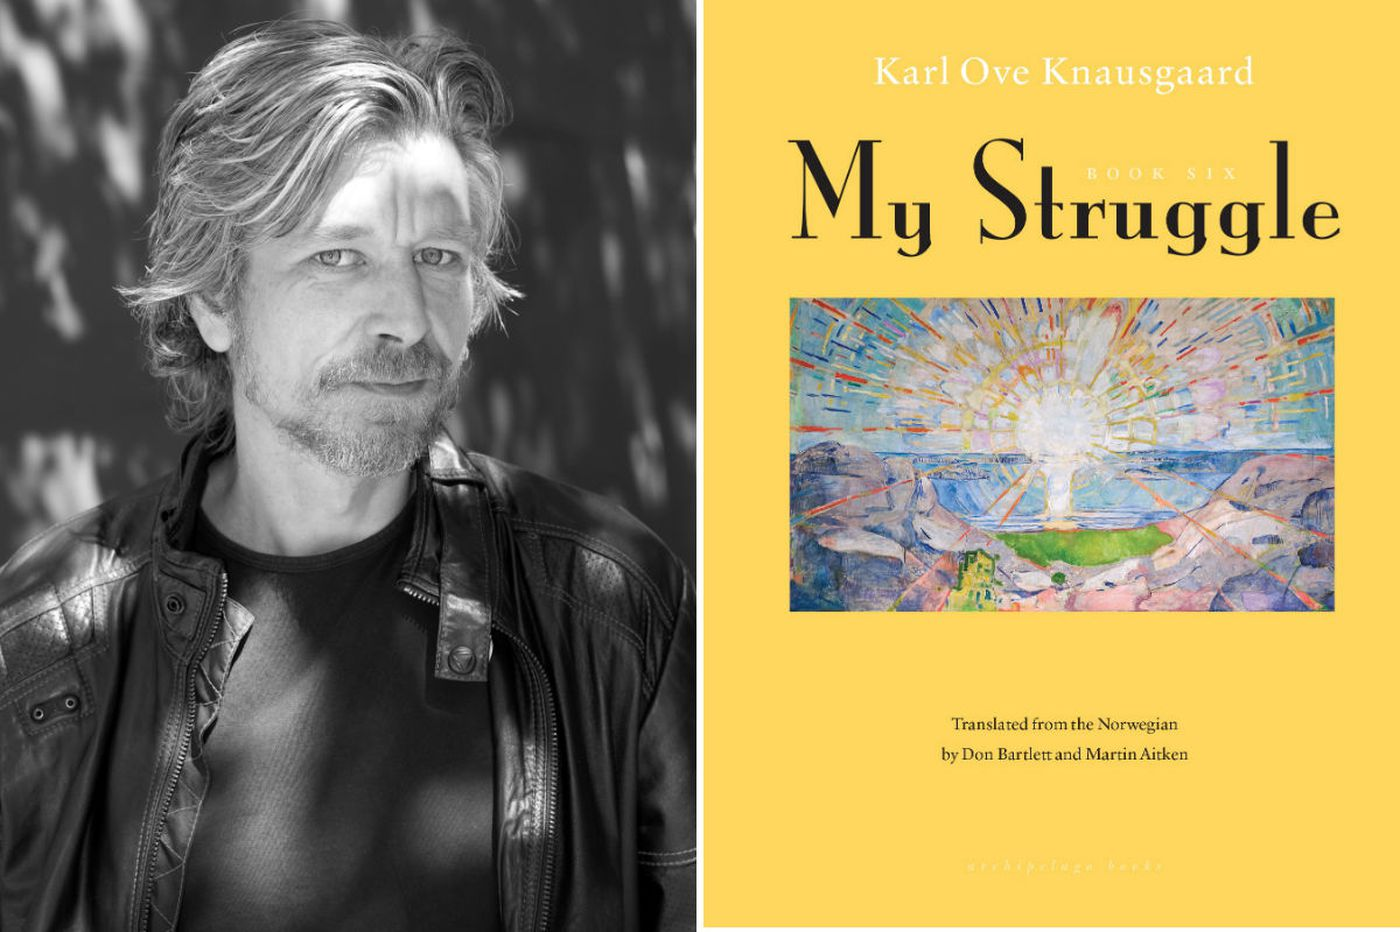 Knausgaard's final book of 'My Struggle': Reality hunger, middle-class life, and epic passion